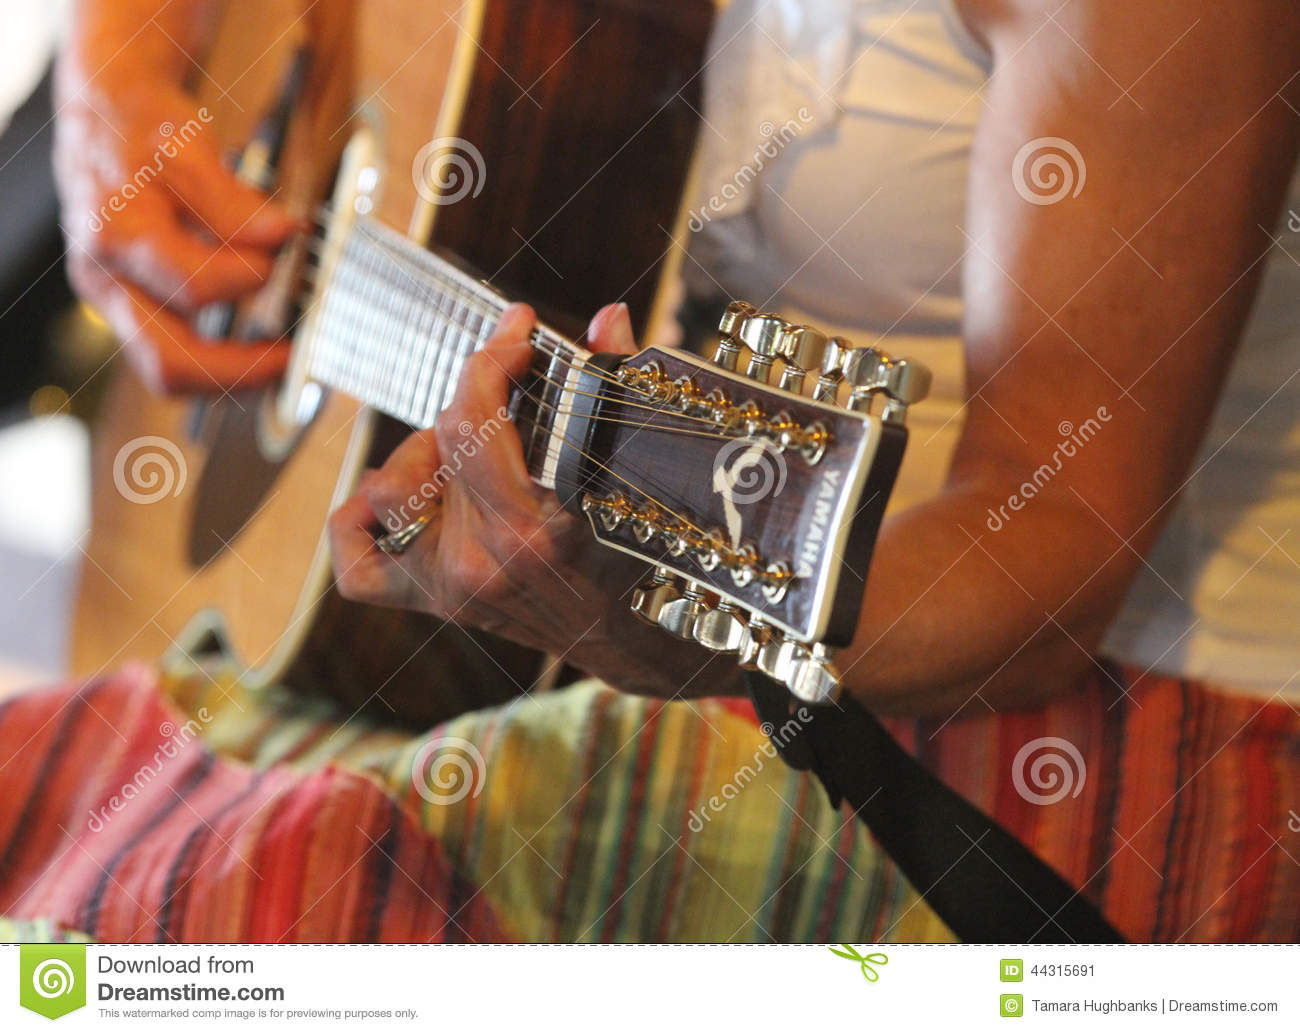 Beautiful female playing guitar in colorful skirt